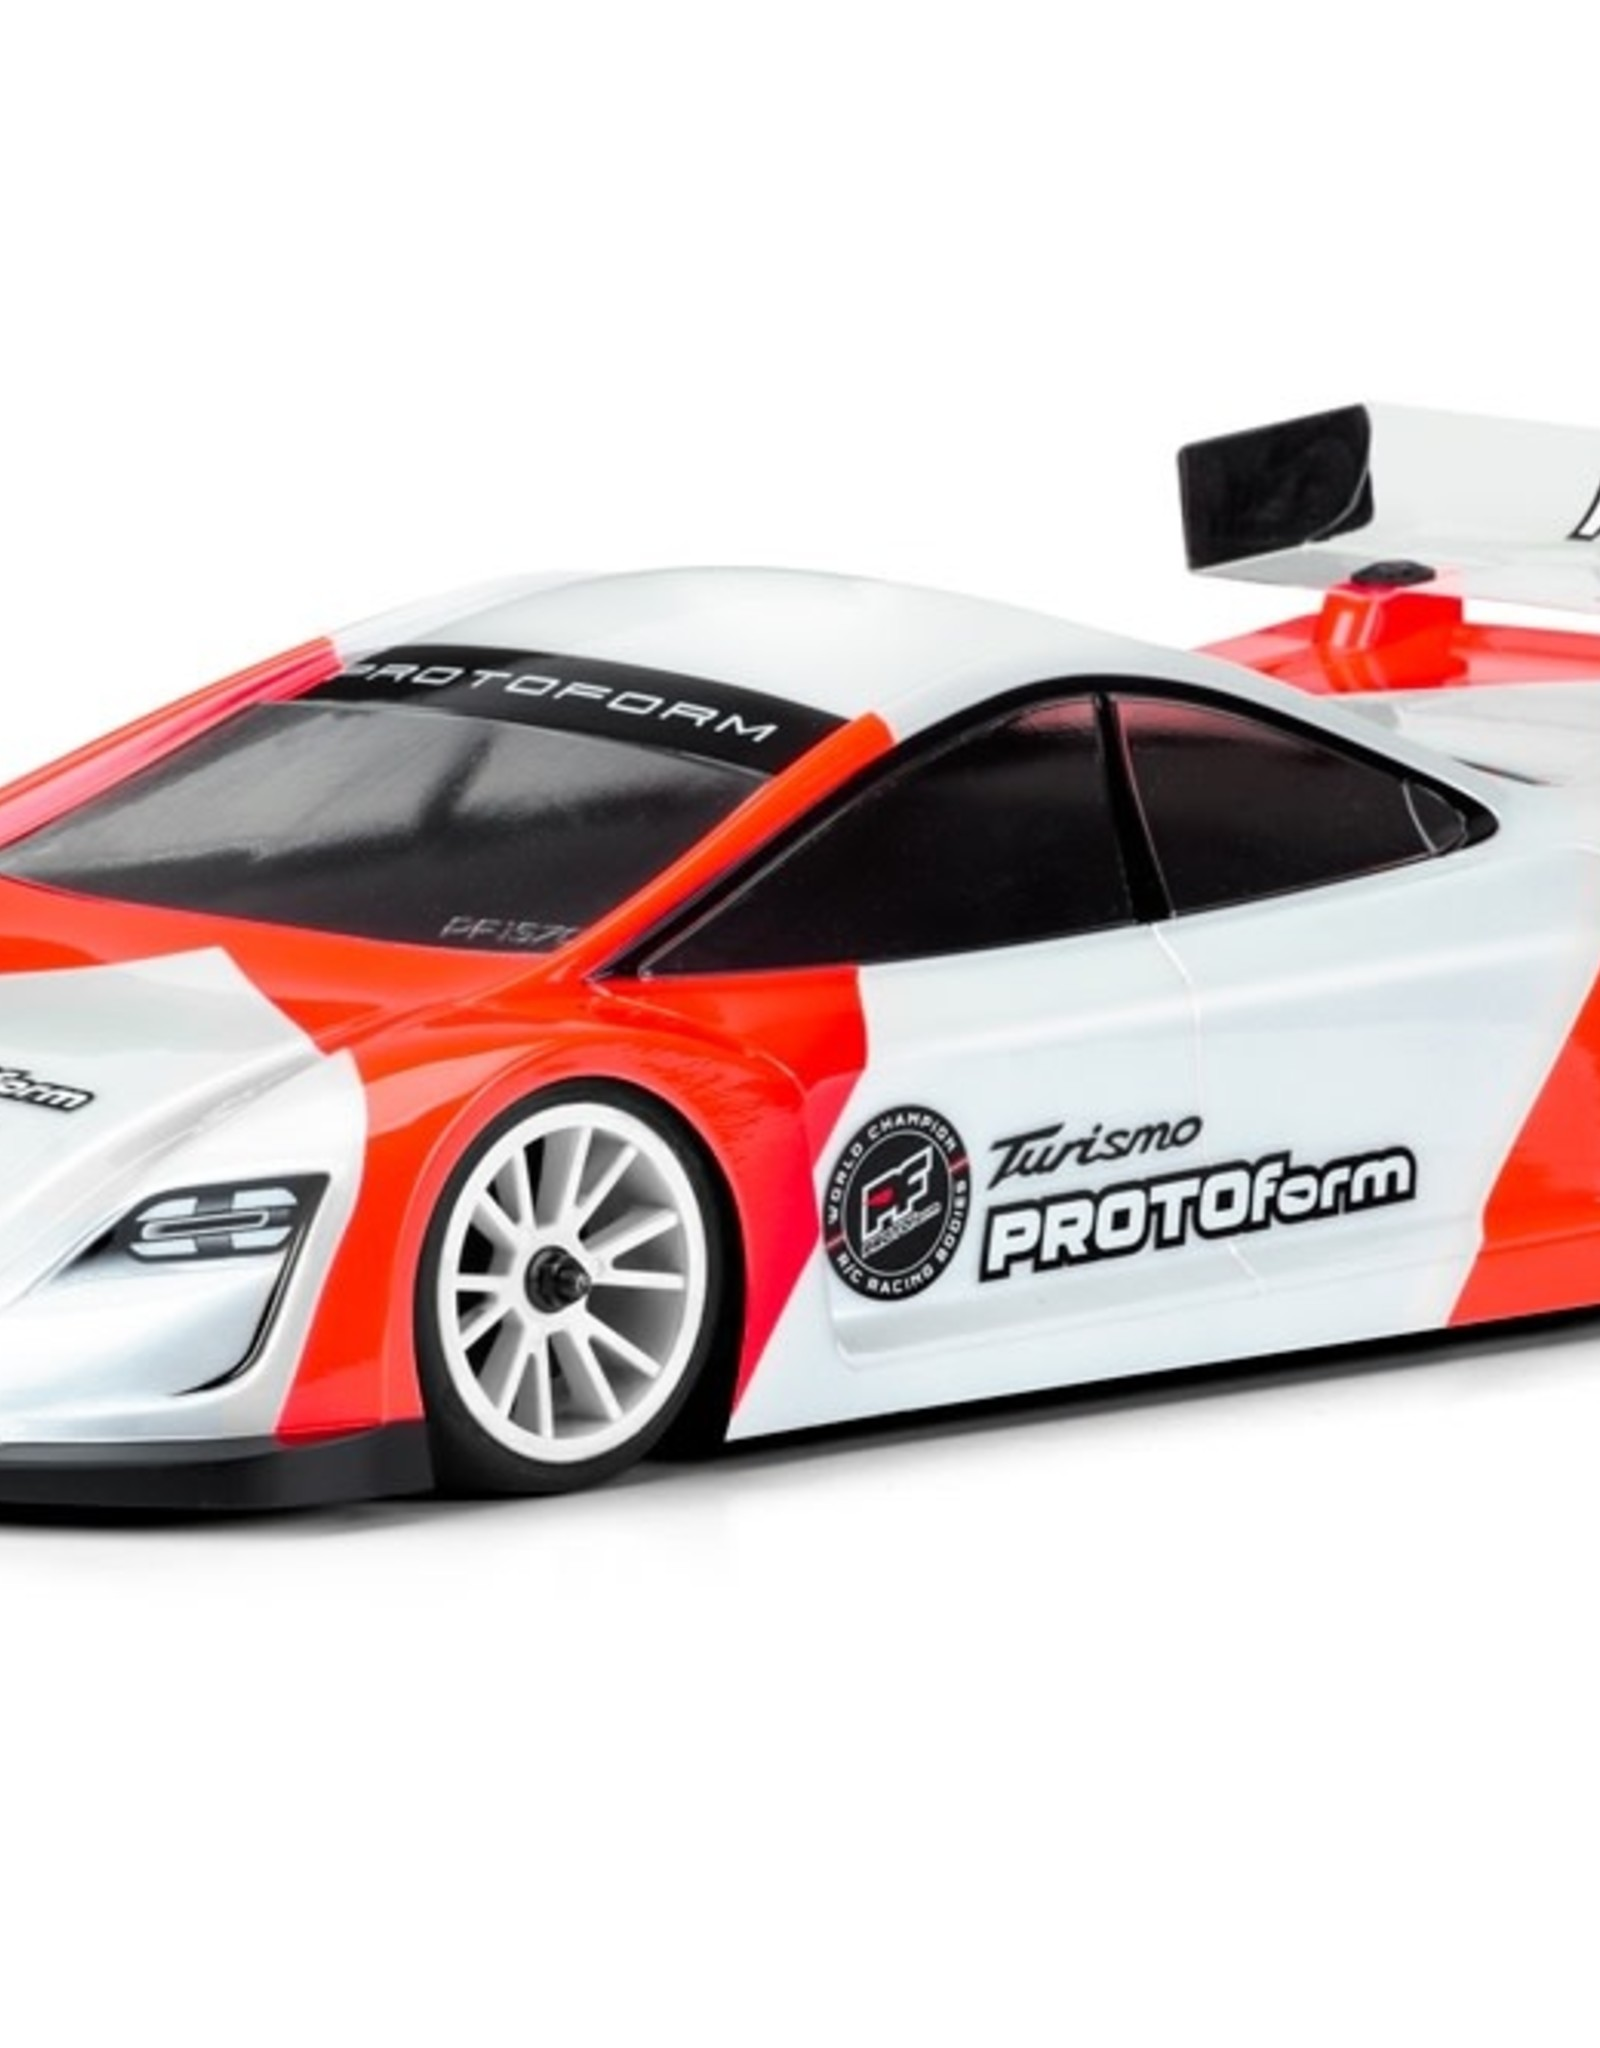 Protoform Protoform Turismo Light Weight Clear Body for 190mm TC